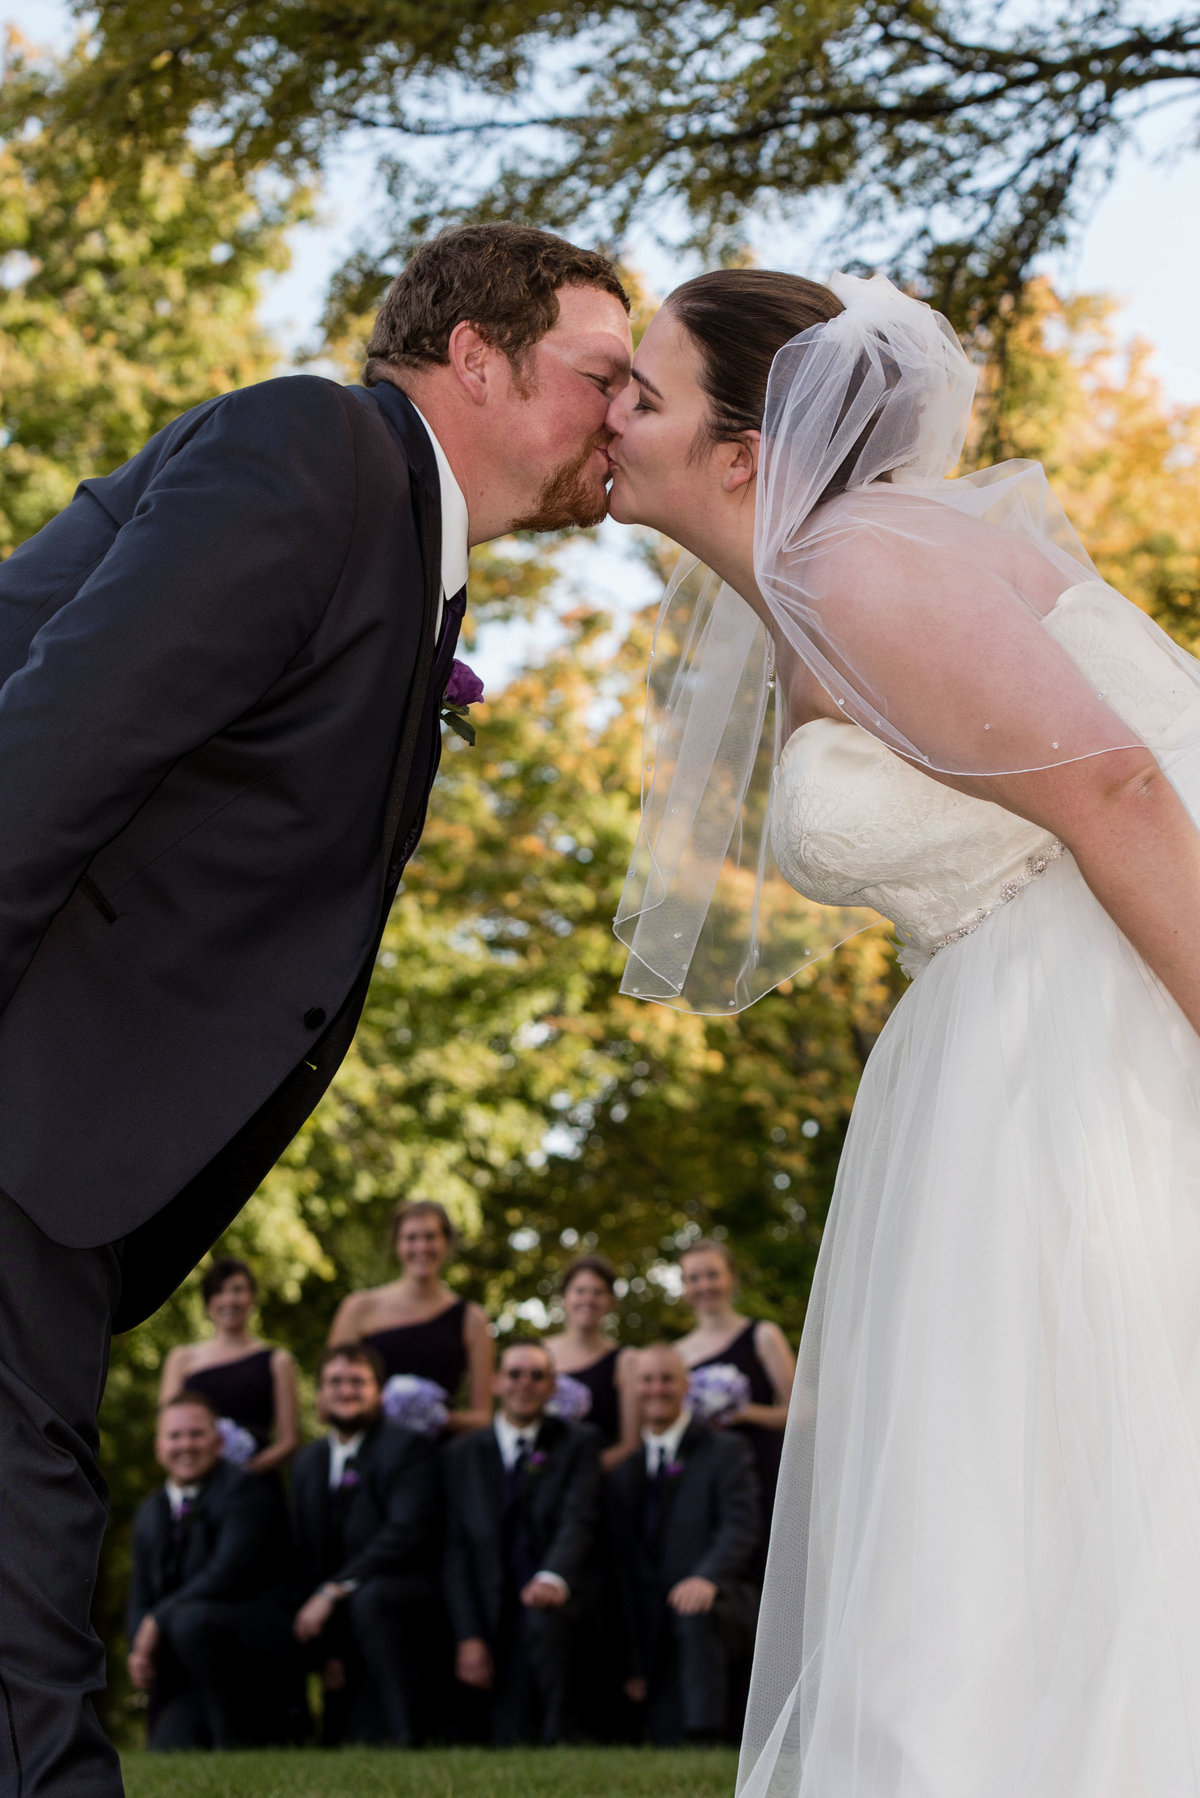 kiss with bridal party in background